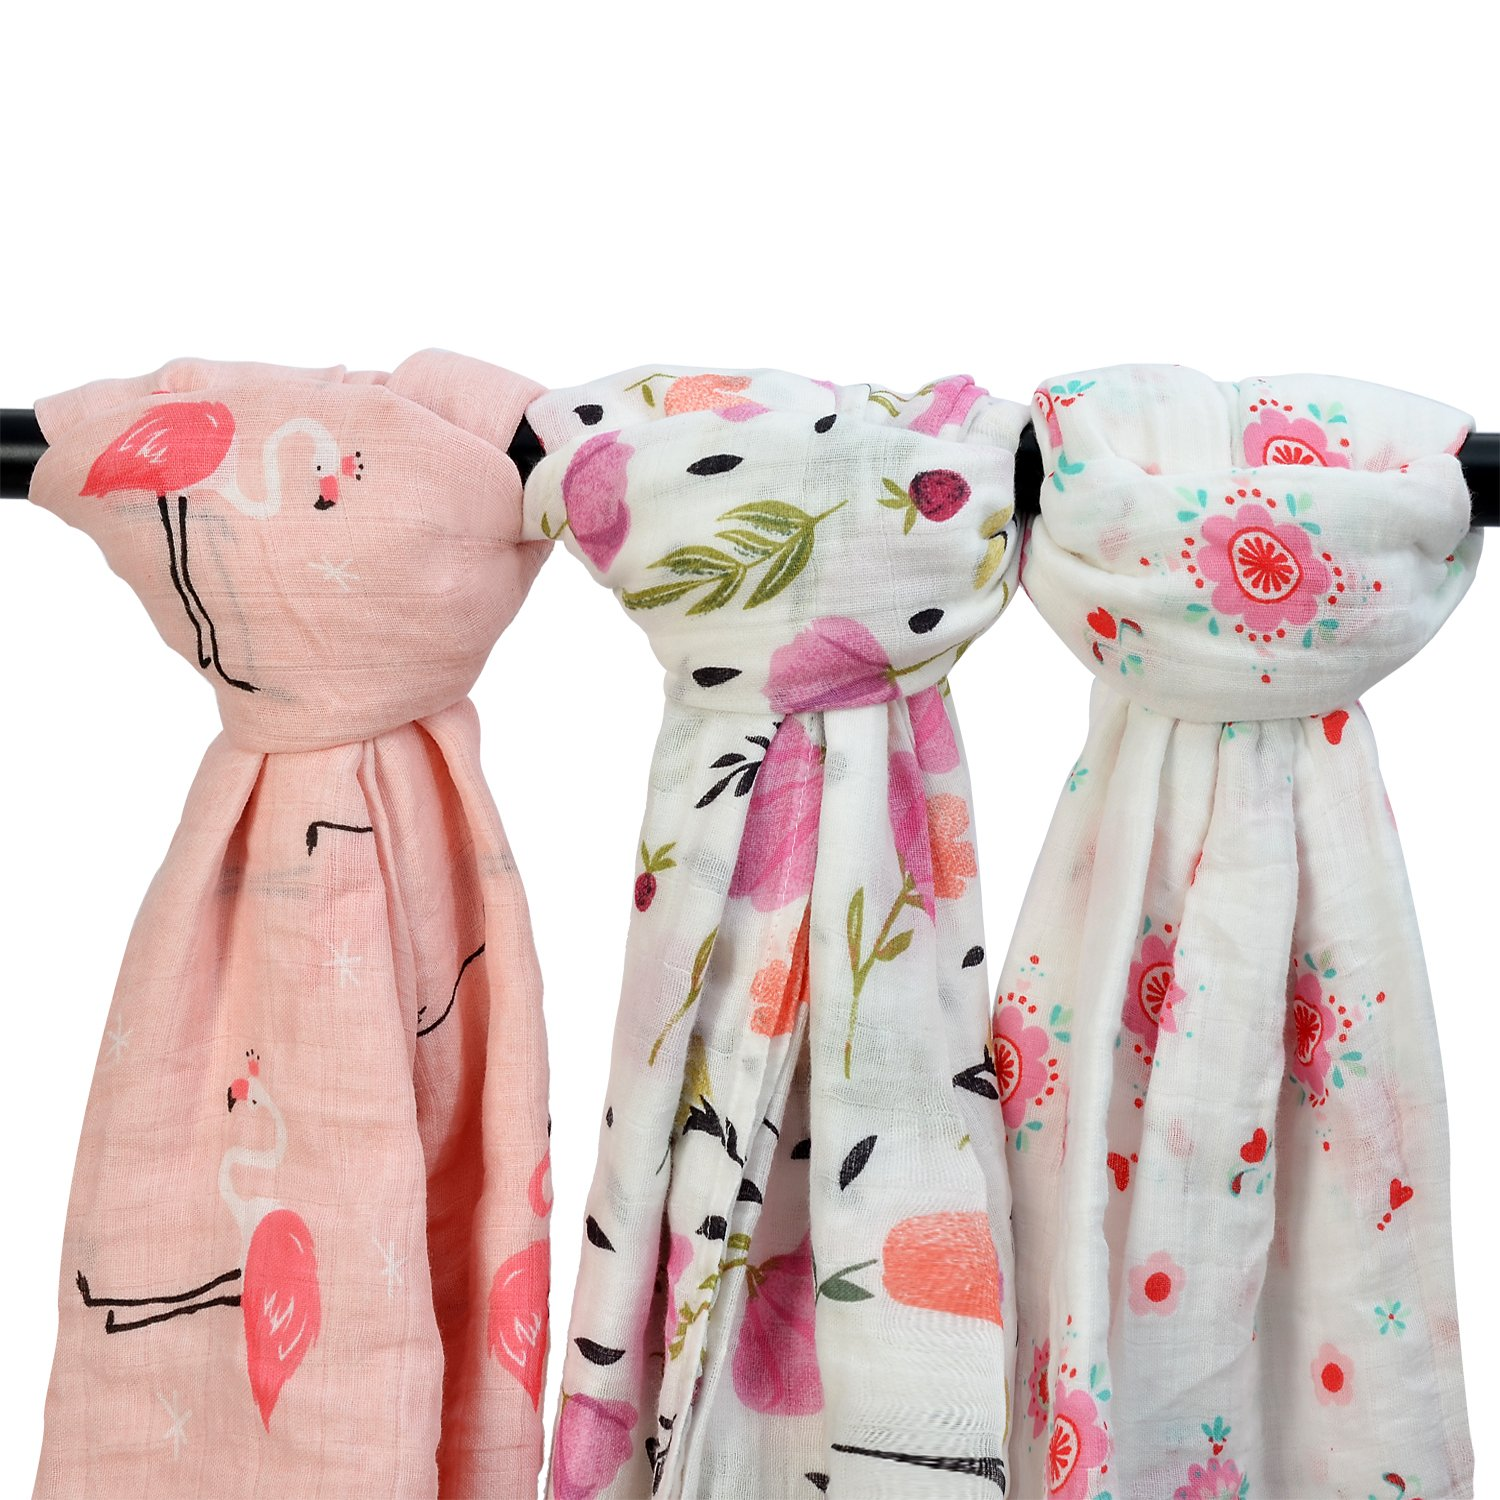 Bamboo Muslin Baby Blanket – 3 Pack 47x47inches Floral & Flamingo Print Baby Blanket Girls, Large Soft Baby Swaddle Blanket Baby Wrap Muslin Cloths, Perfect Baby Shower Gifts(Flamingo & Floral)